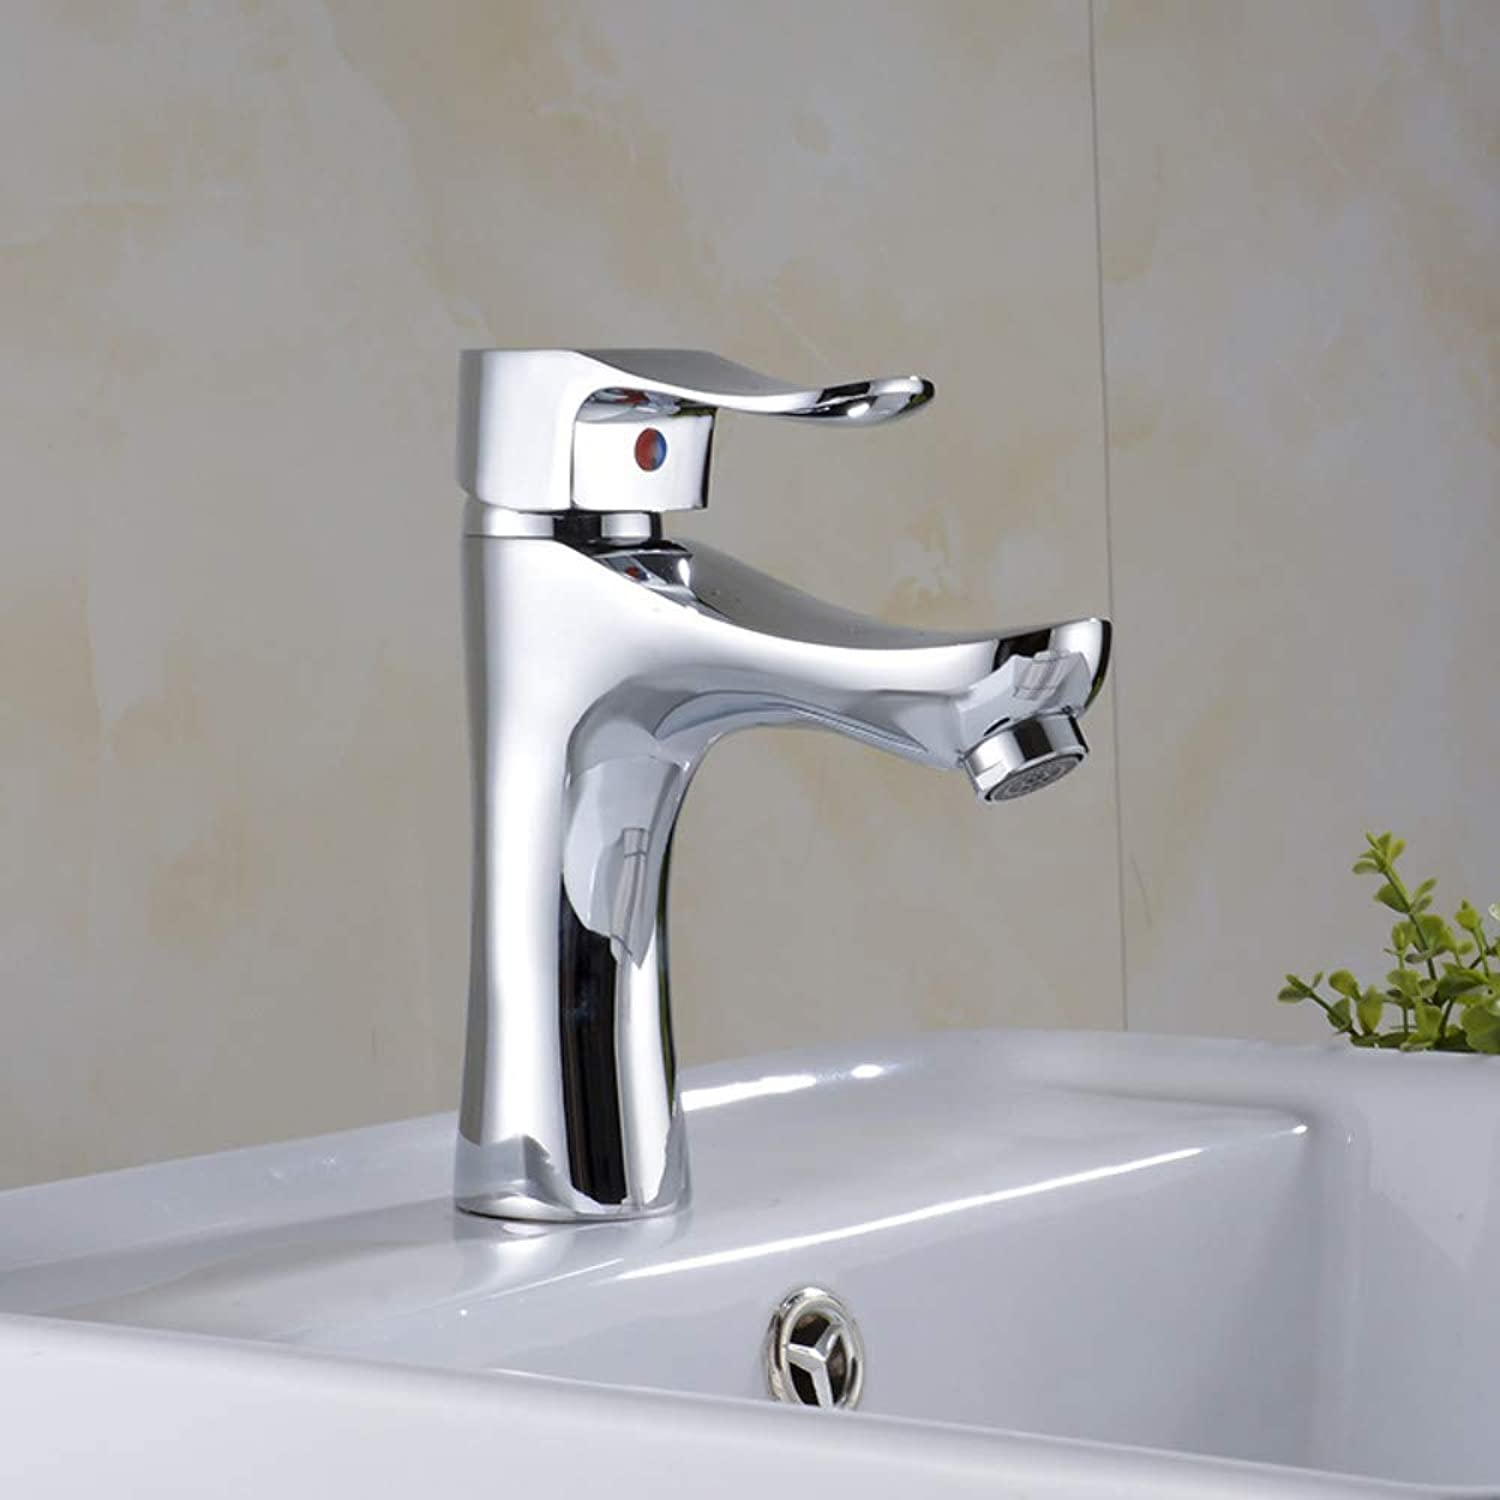 Kitchen Sink Tapbathroom Sink Tap single Hole Basin Faucet Faucet Thumb Single Hole Copper Faucet